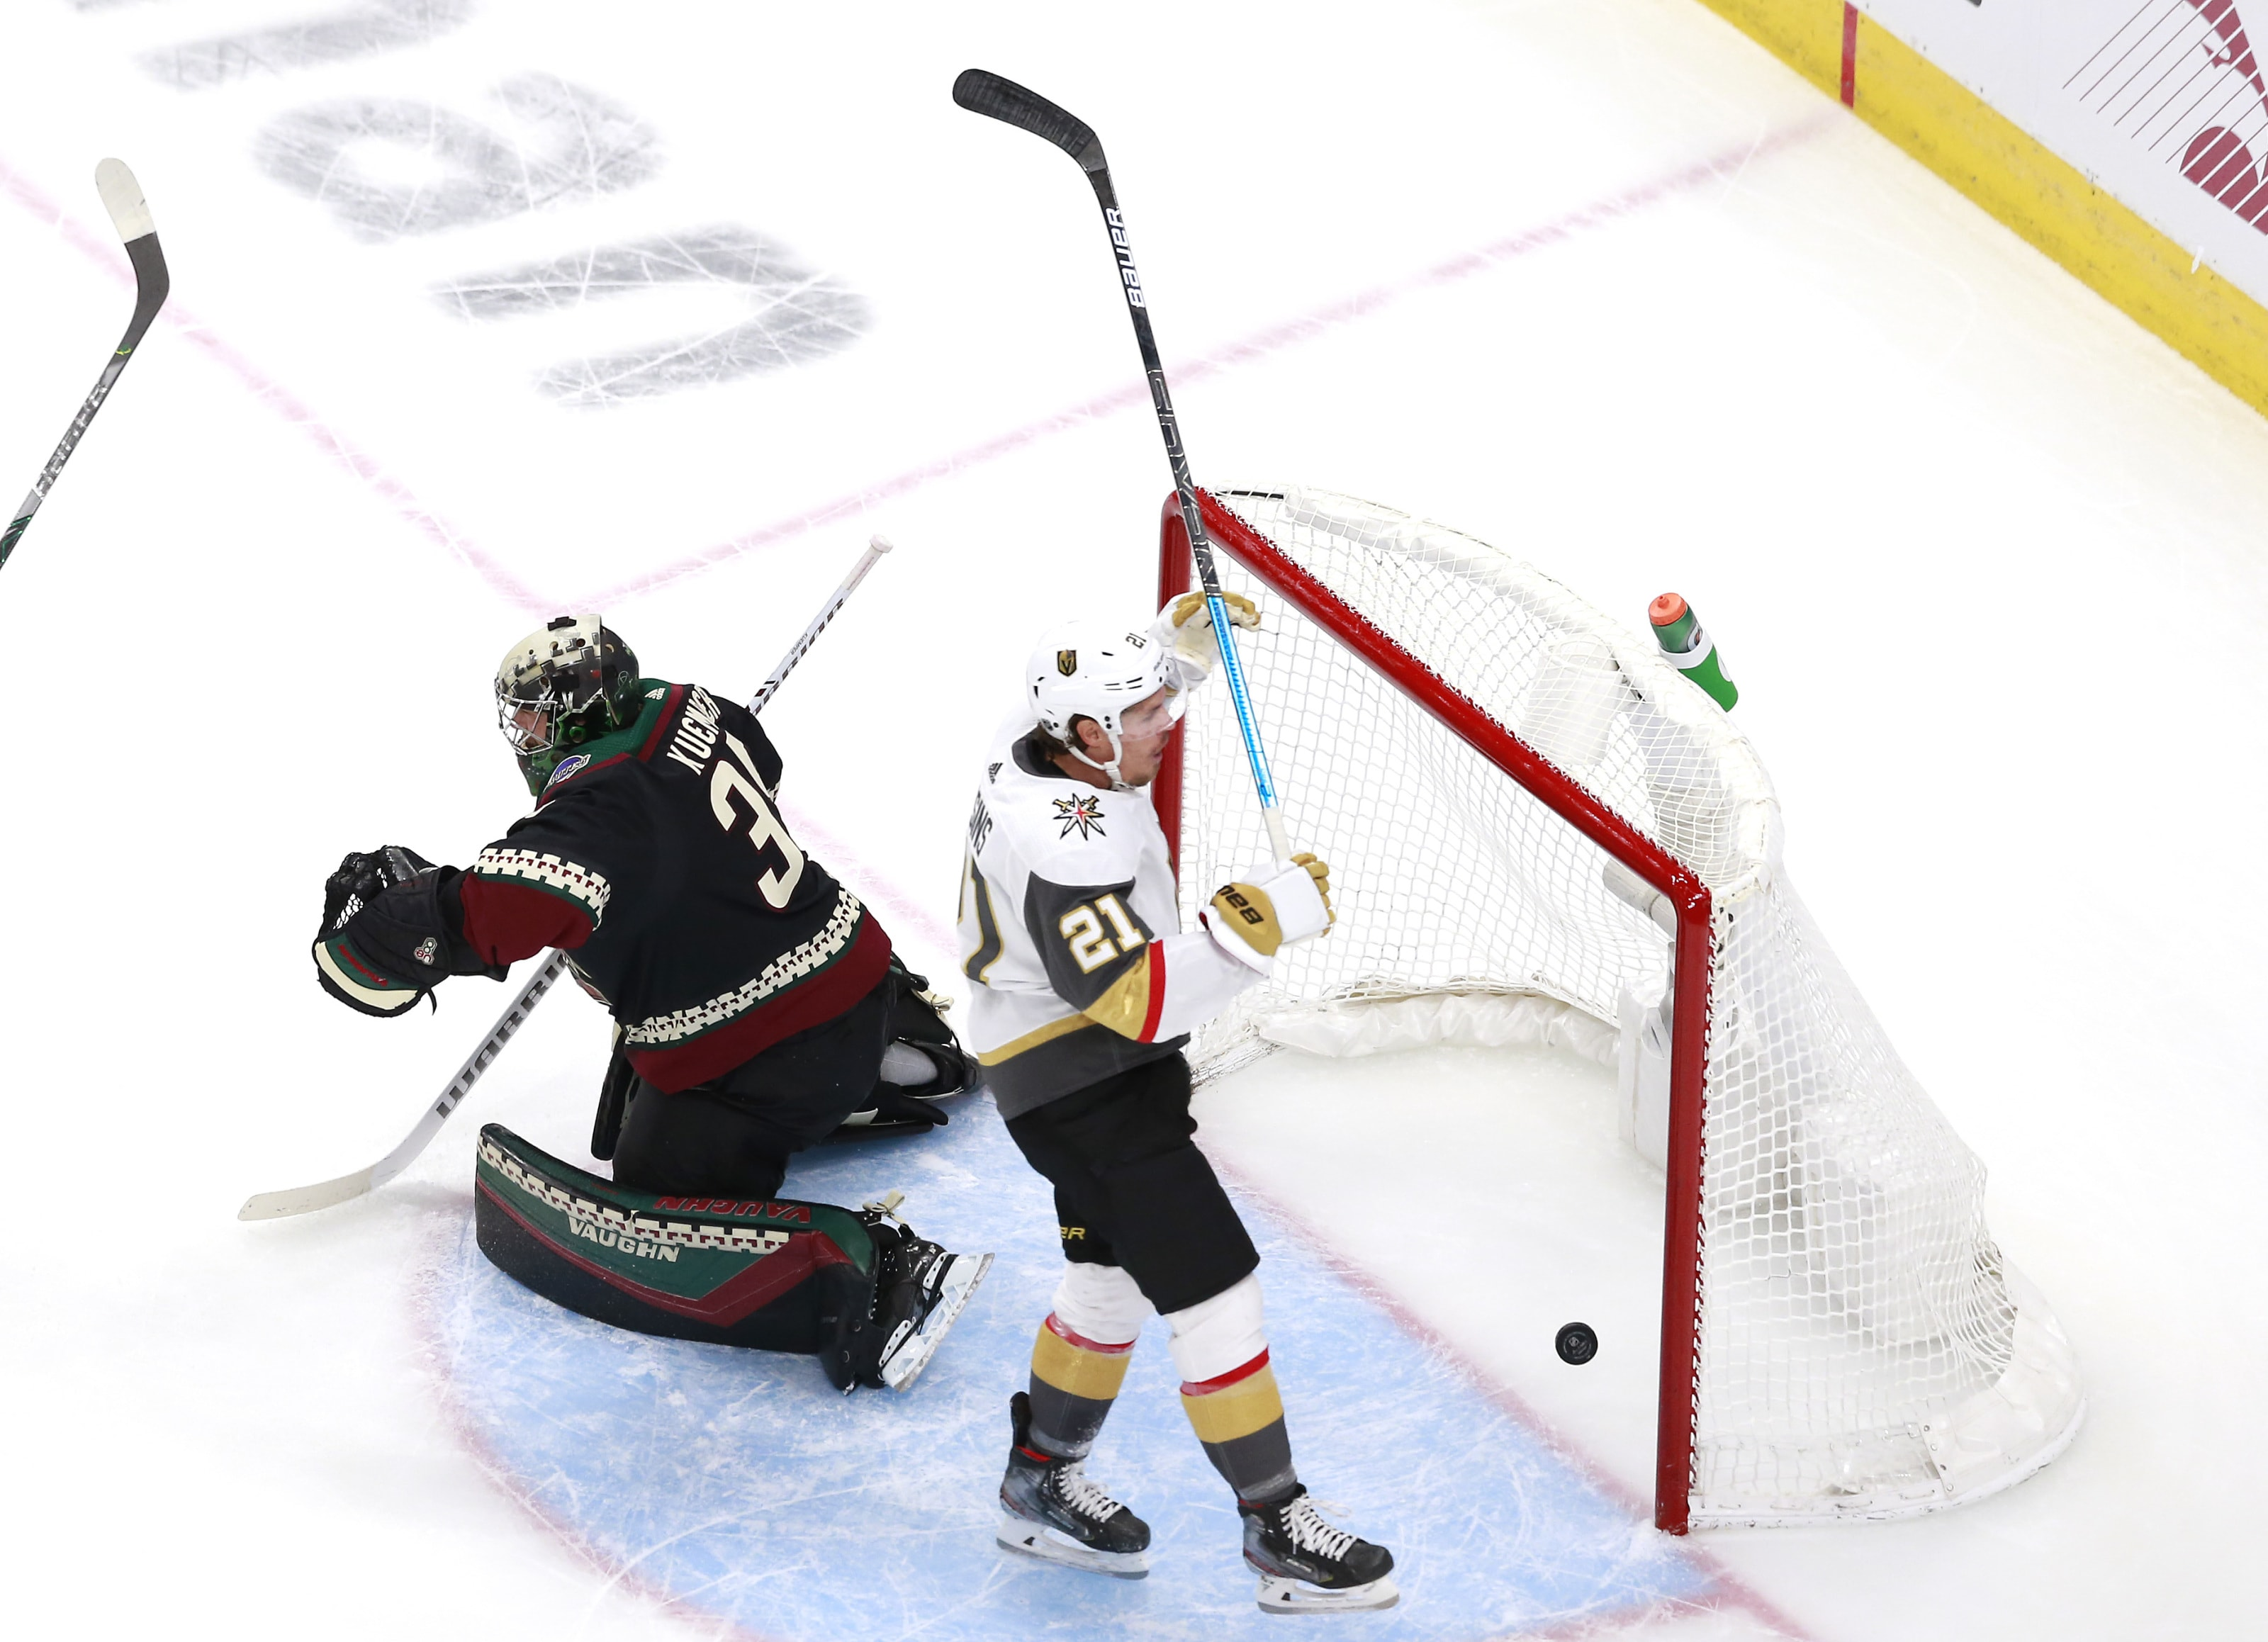 Darcy Kuemper #35 of the Arizona Coyotes is unable to stop a power play goal by Reilly Smith of the Vegas Golden Knights as Nick Cousins #21 of the Vegas Golden Knights celebrates.